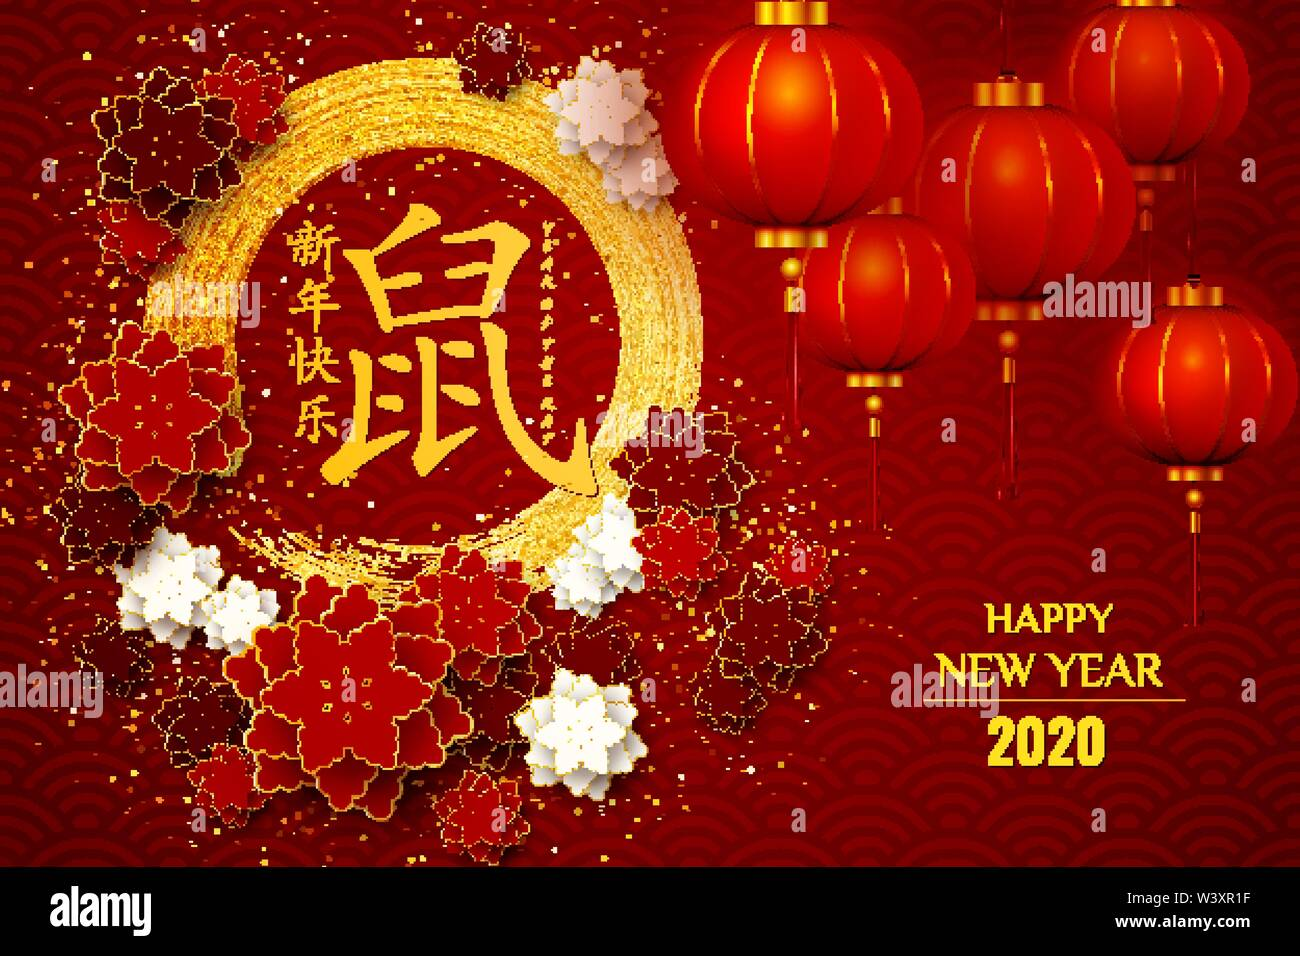 Chinese Moon Festival 2020.Happy Chinese New Year 2020 Red Greeting Card Stock Vector